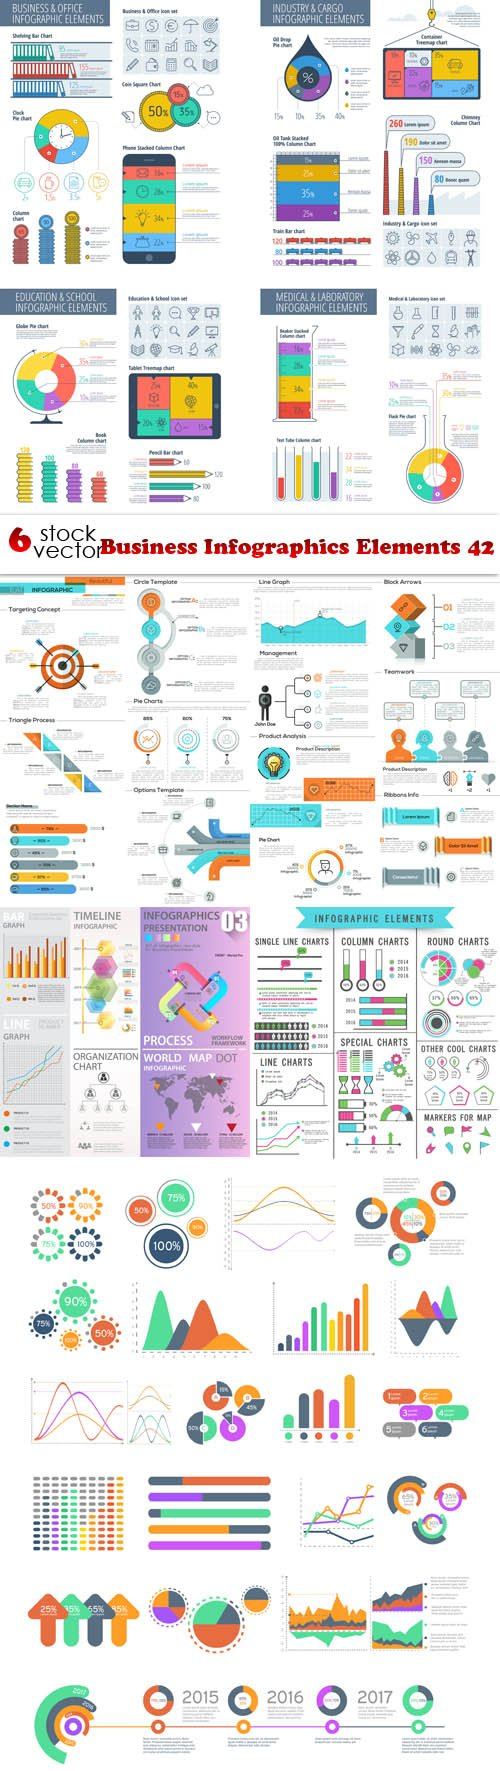 Vectors - Business Infographics Elements 42